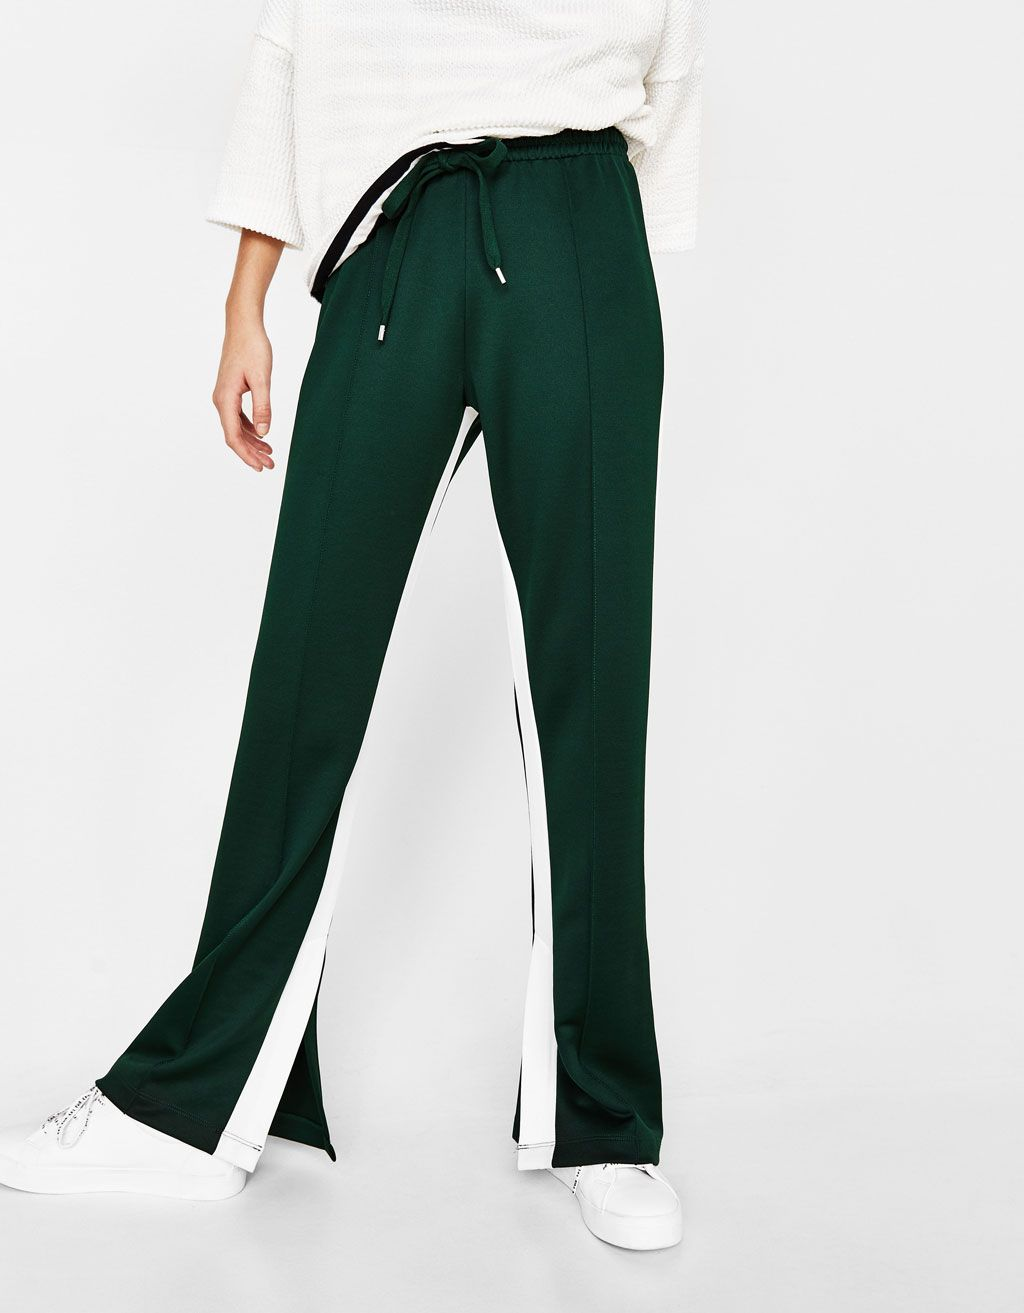 730616edc6 Wide-leg trousers with side stripes - Bershka #fashion #product #stripes  #green #girl #trend #trendy